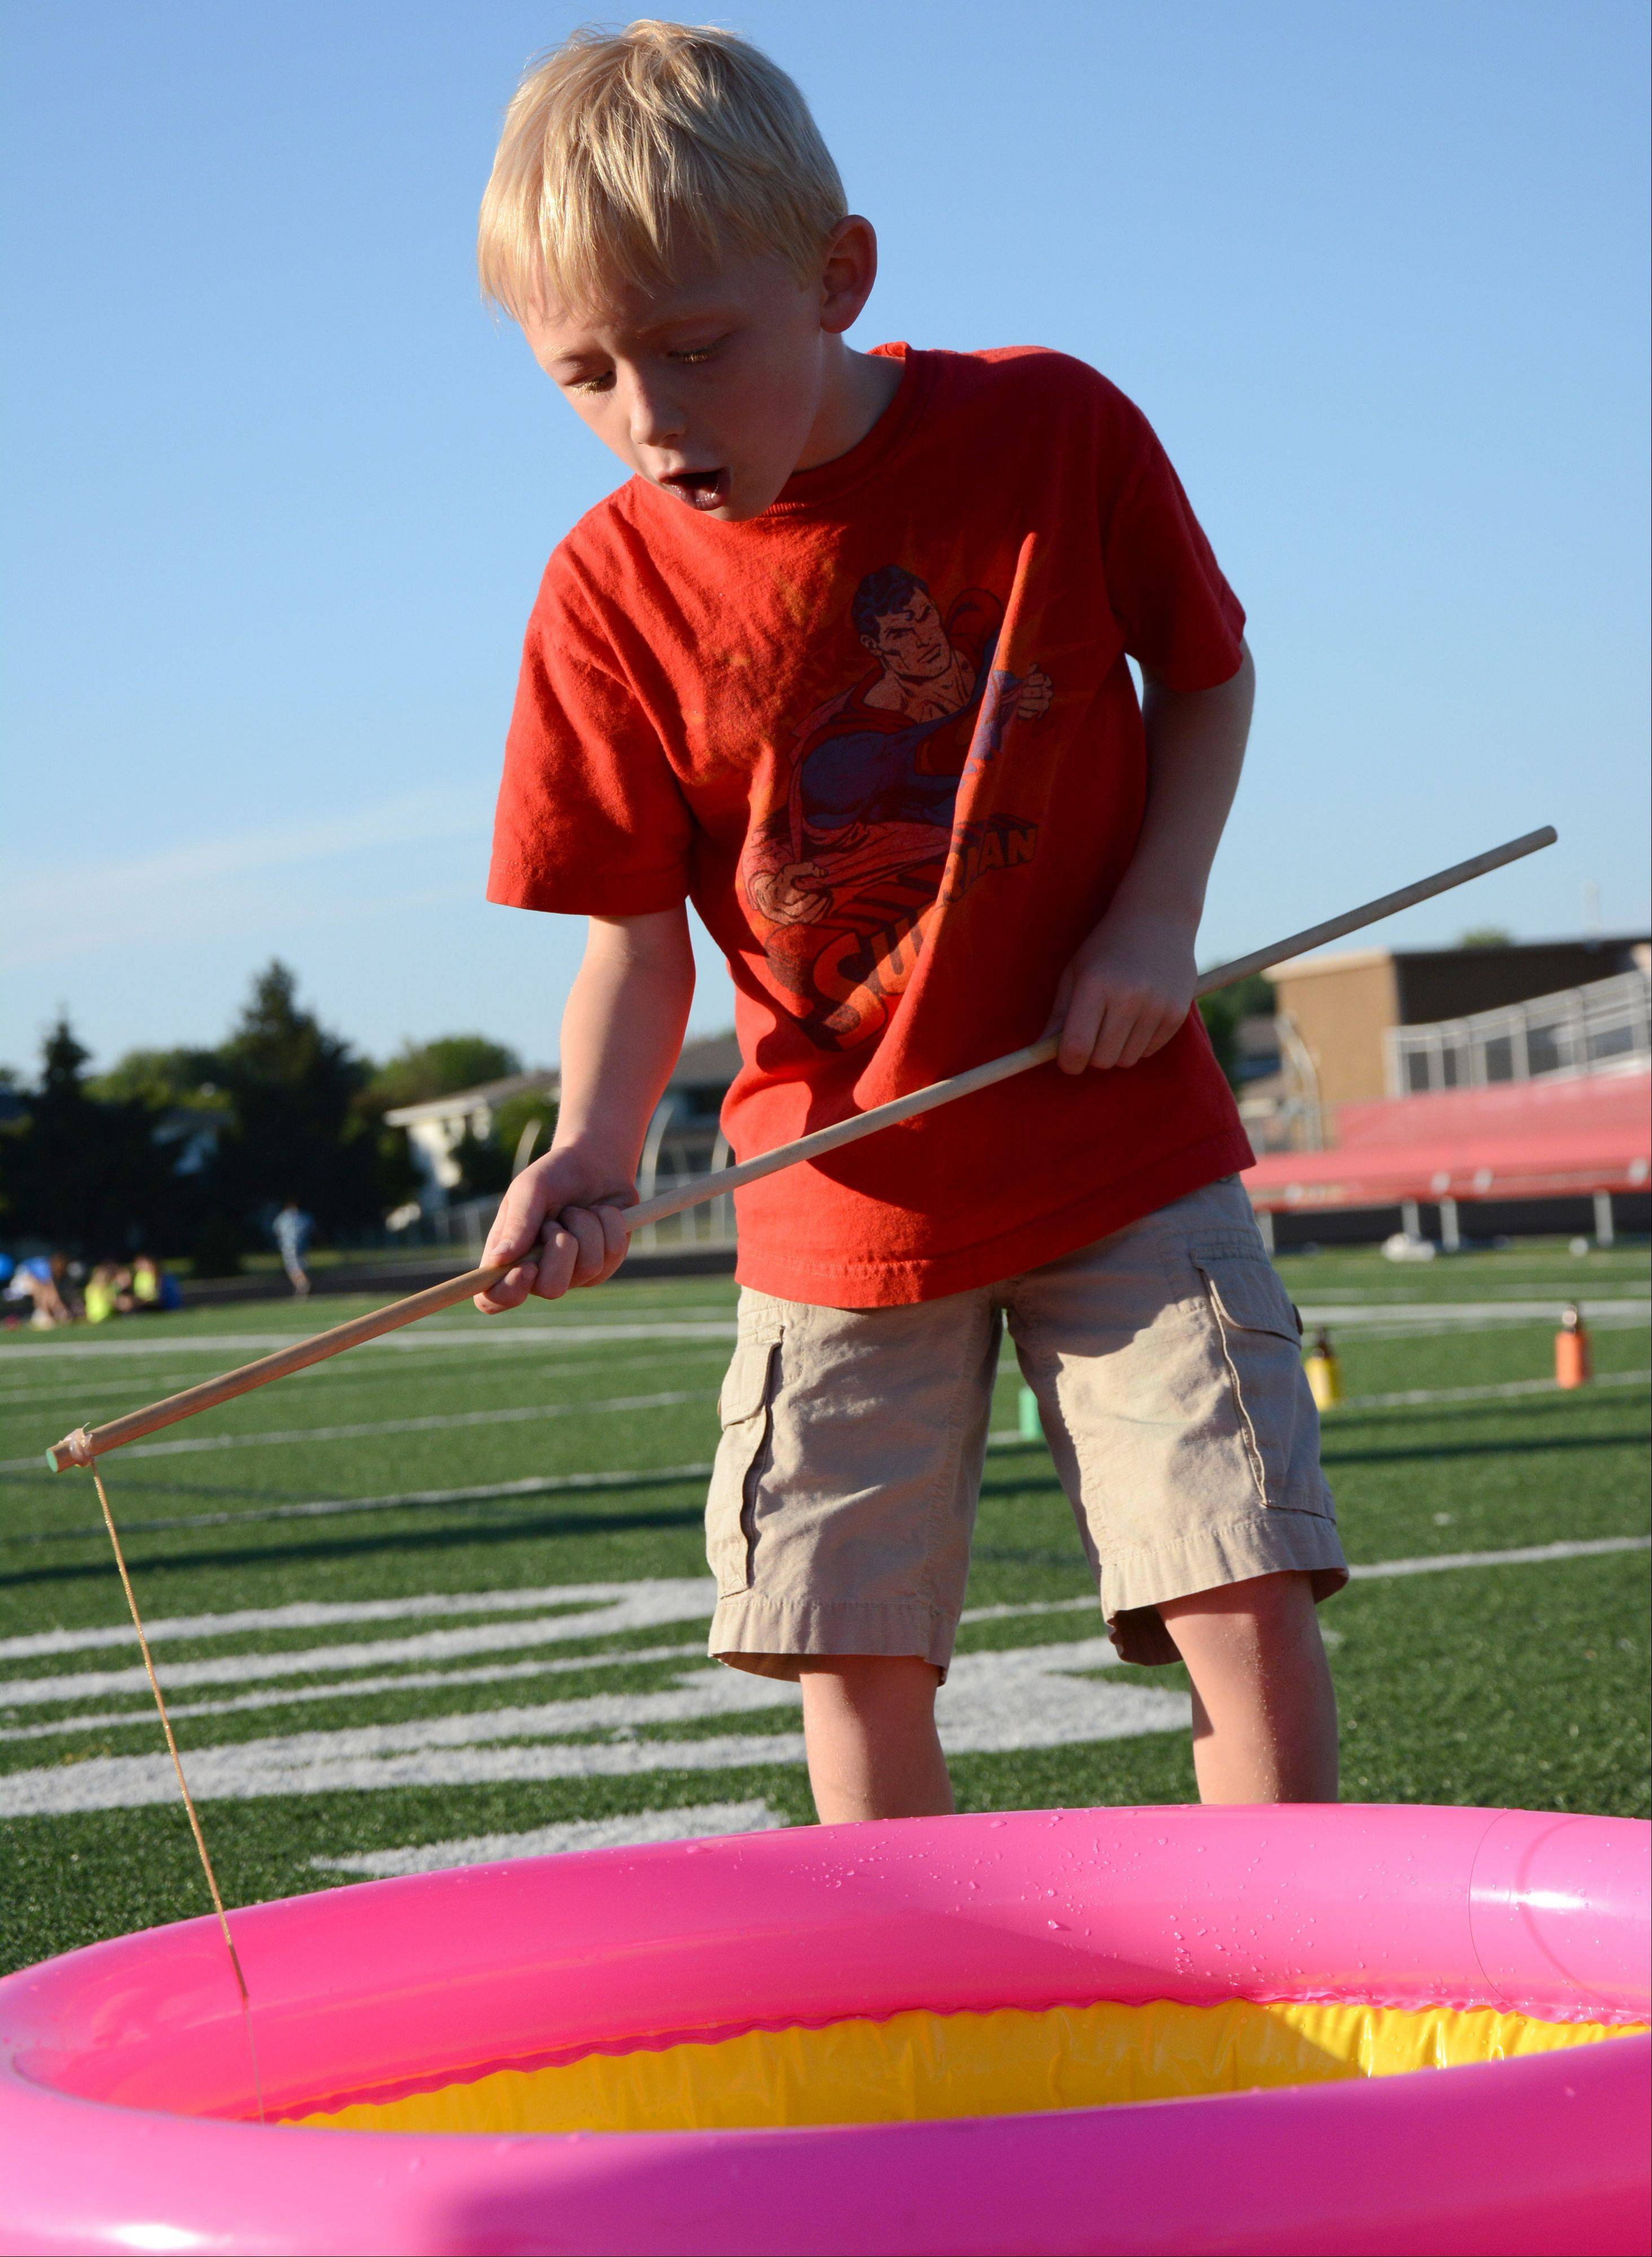 Jack Wienke, 7, of Hoffman Estates attempts to catch a rubber duck Friday. during an event to benefit the Mikias Tefera Tibebu Memorial Scholarship at Schaumburg High School.